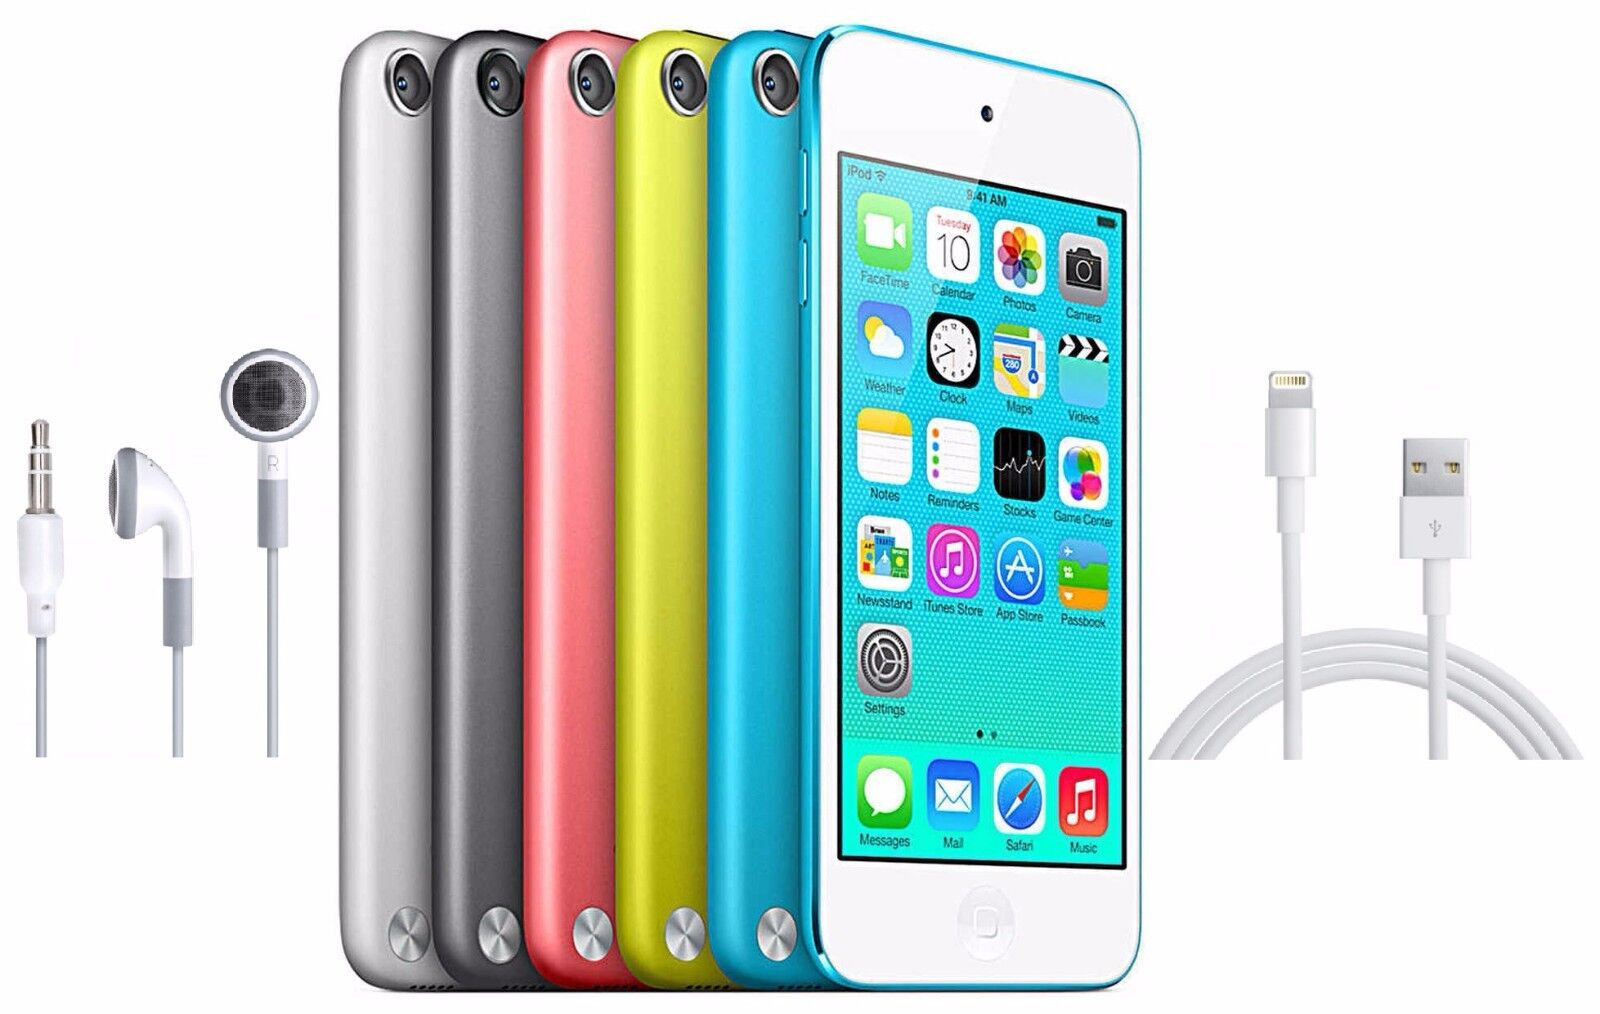 Ipod - Apple iPod Touch 5th Generation 16GB 32GB 64GB Black White Blue Pink Yellow